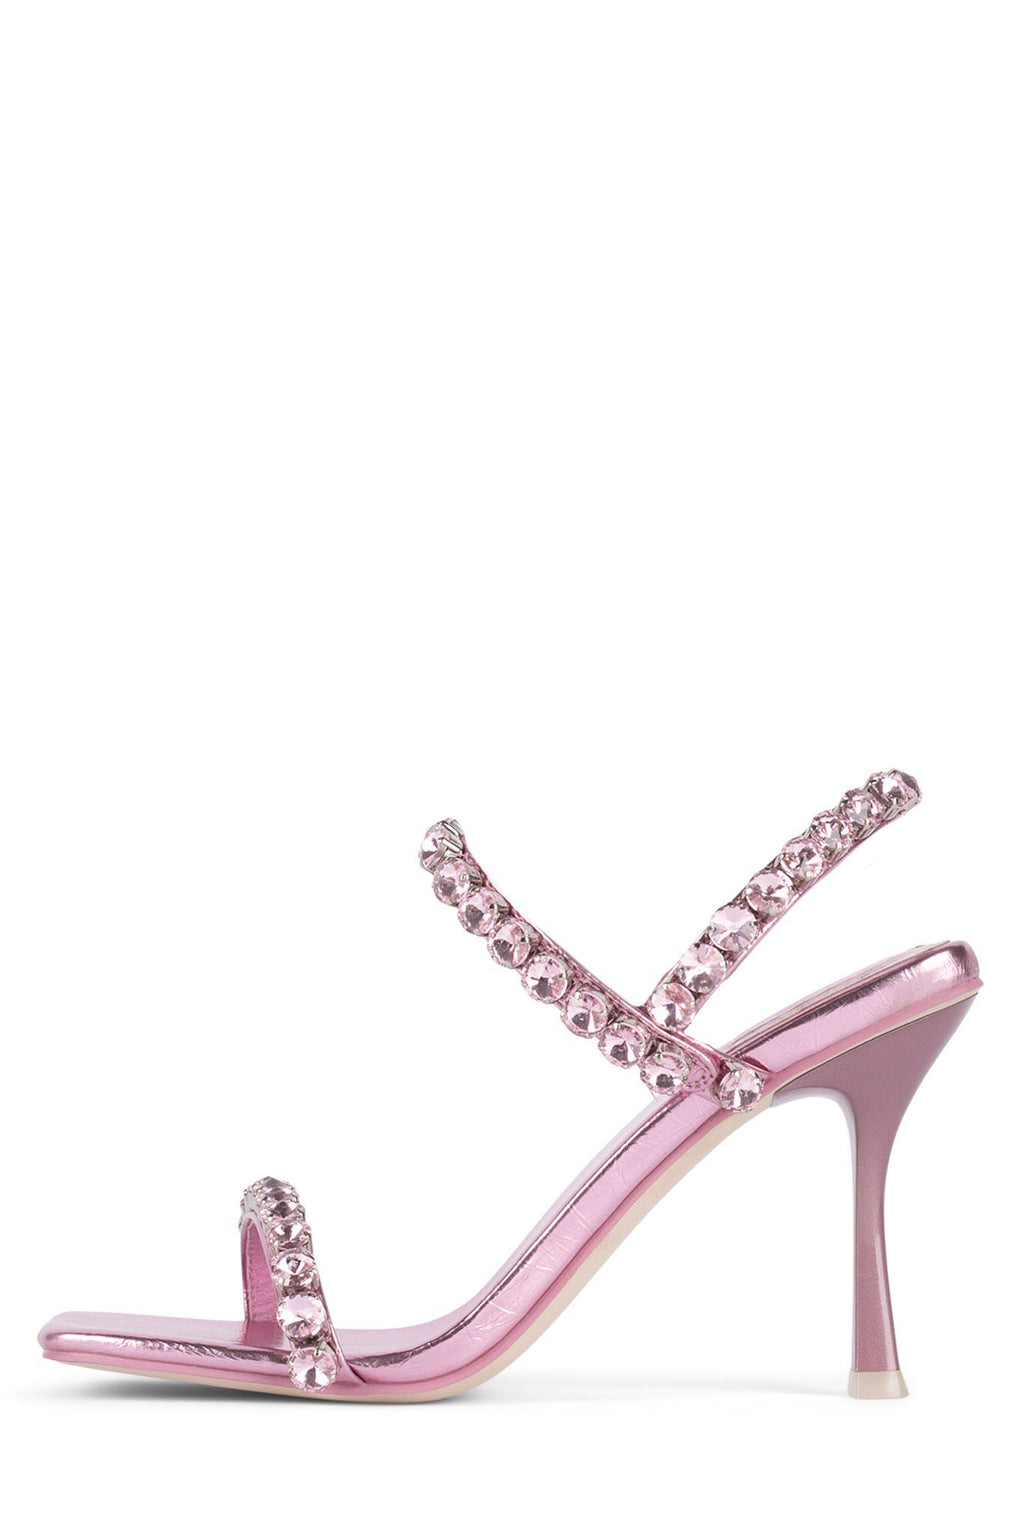 SAINTS YYH Pink Metallic Pink 5